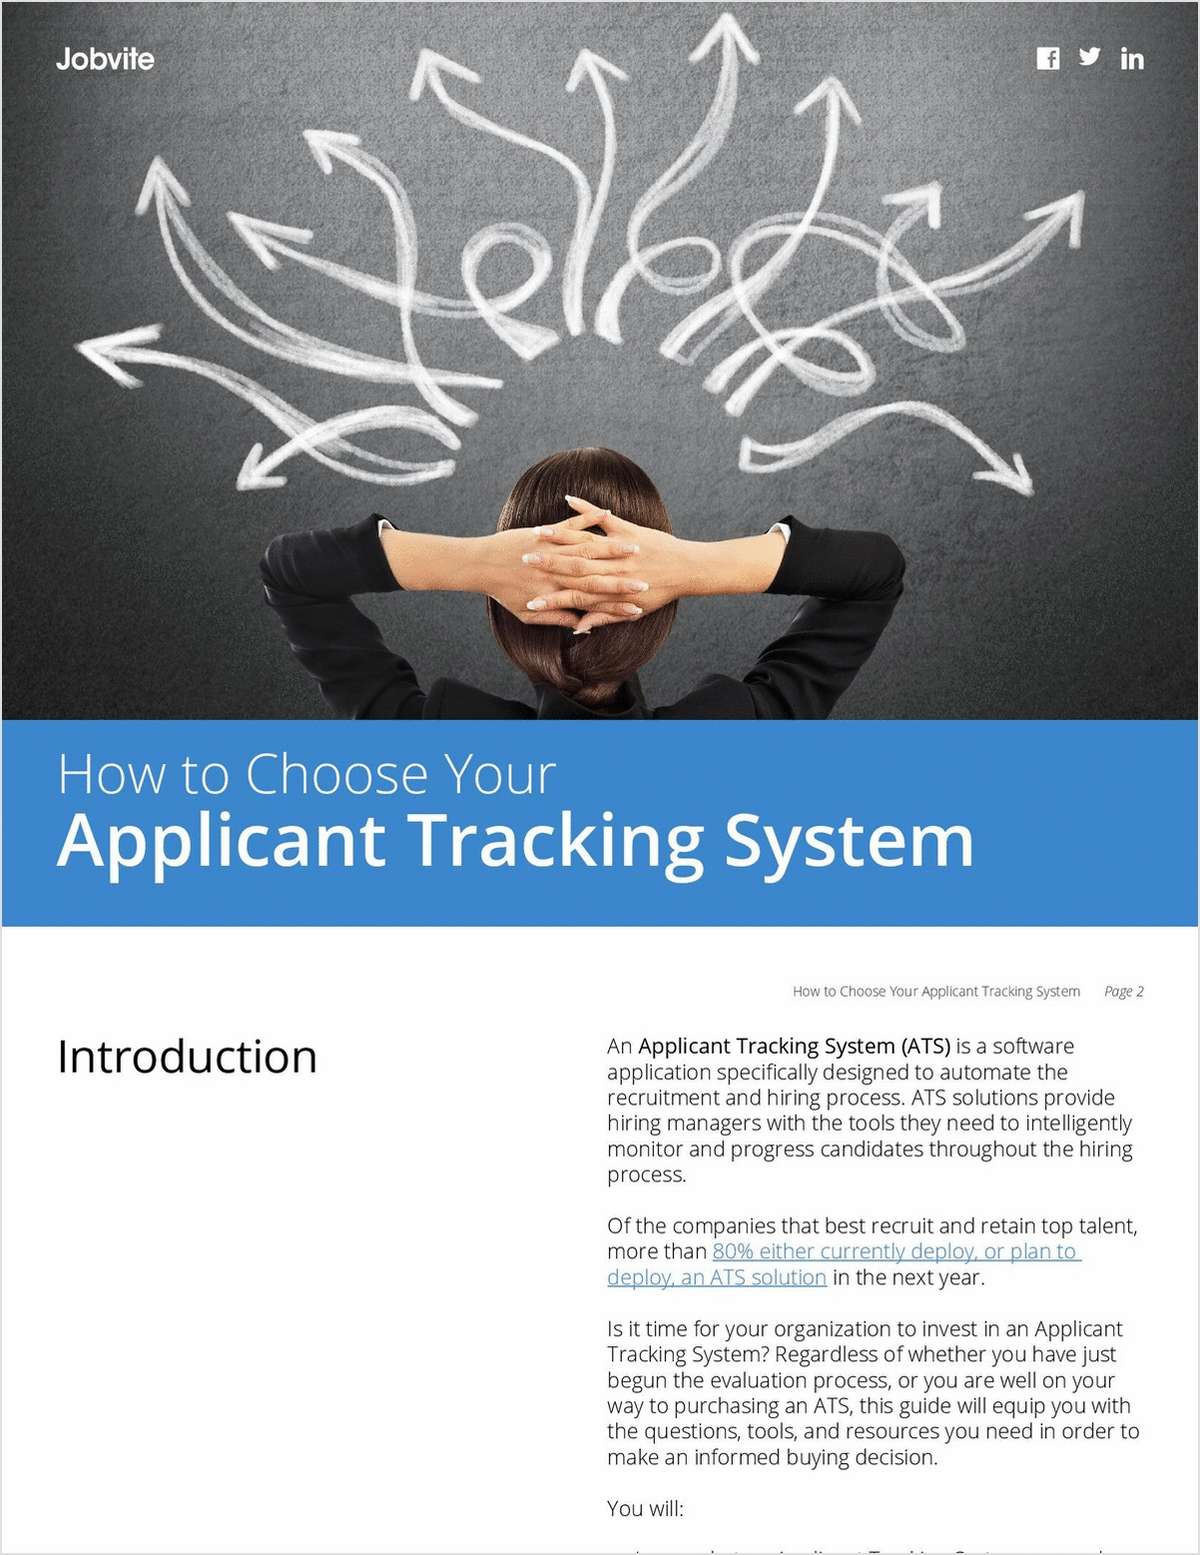 Why Choosing the Right Applicant Tracking System Is Crucial to the Recruitment & Hiring Process